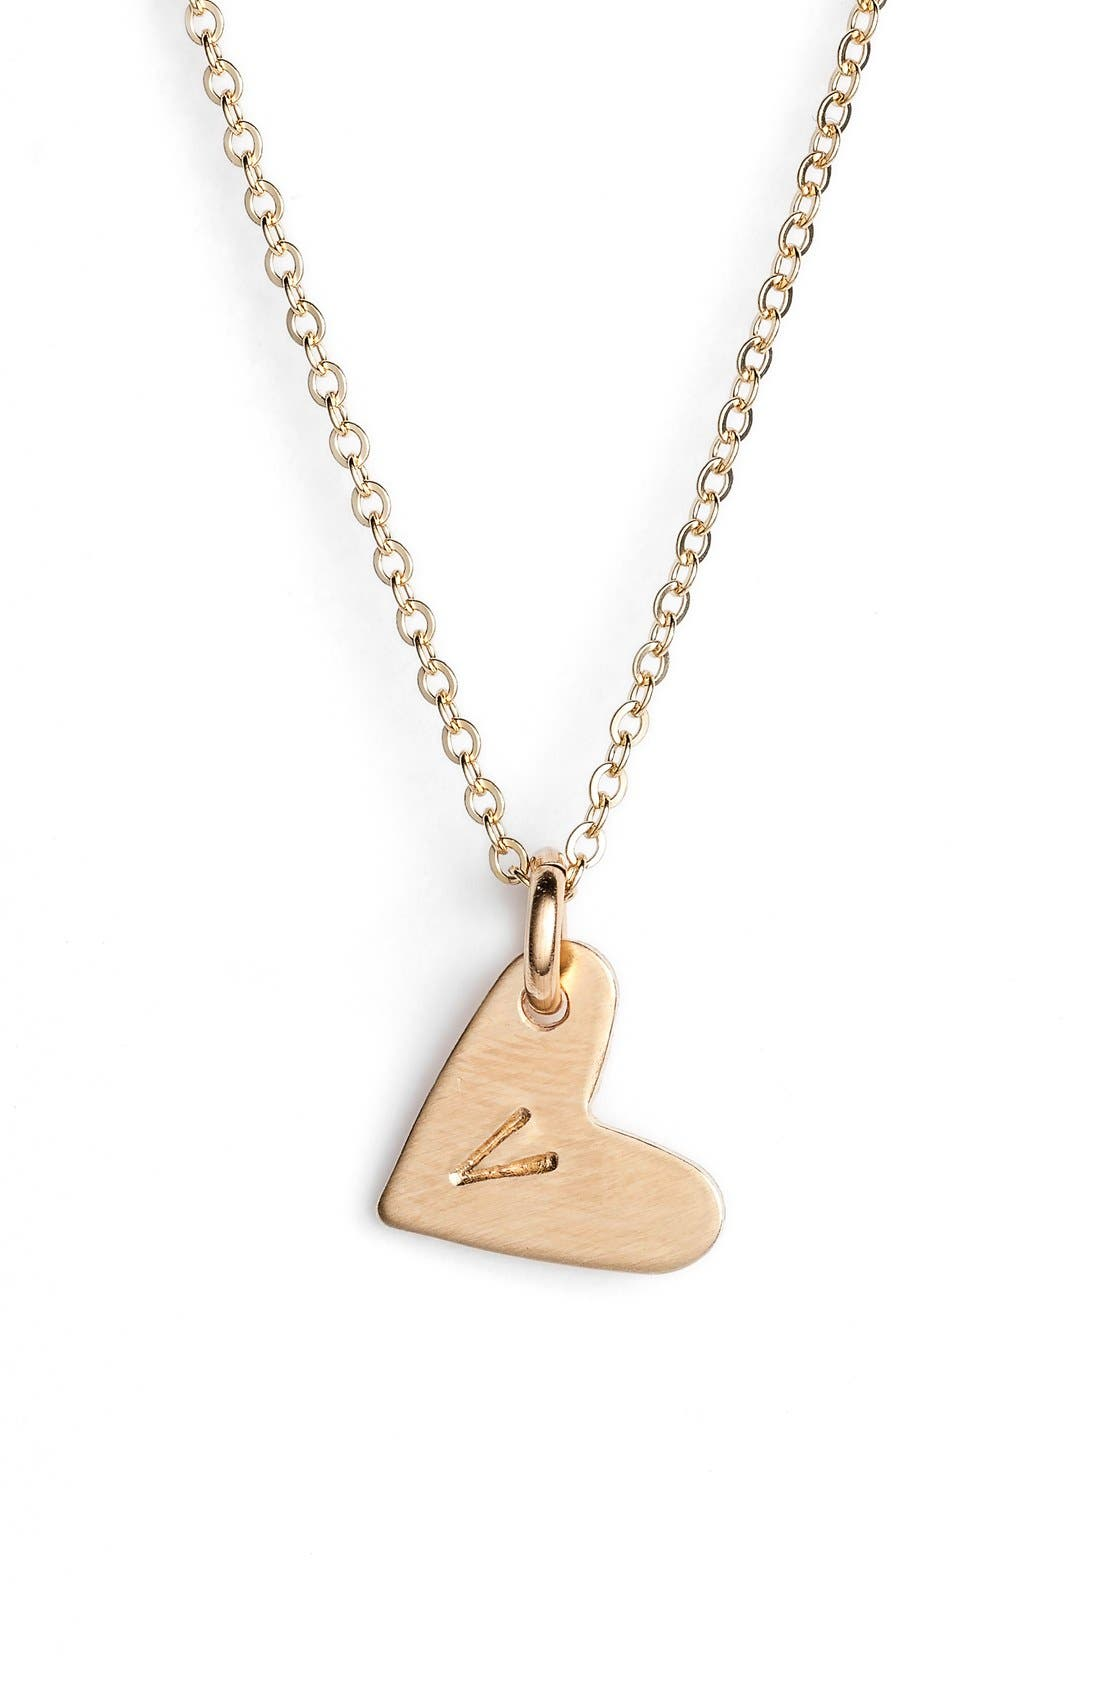 Nashelle 14k-Gold Fill Initial Mini Heart Pendant Necklace